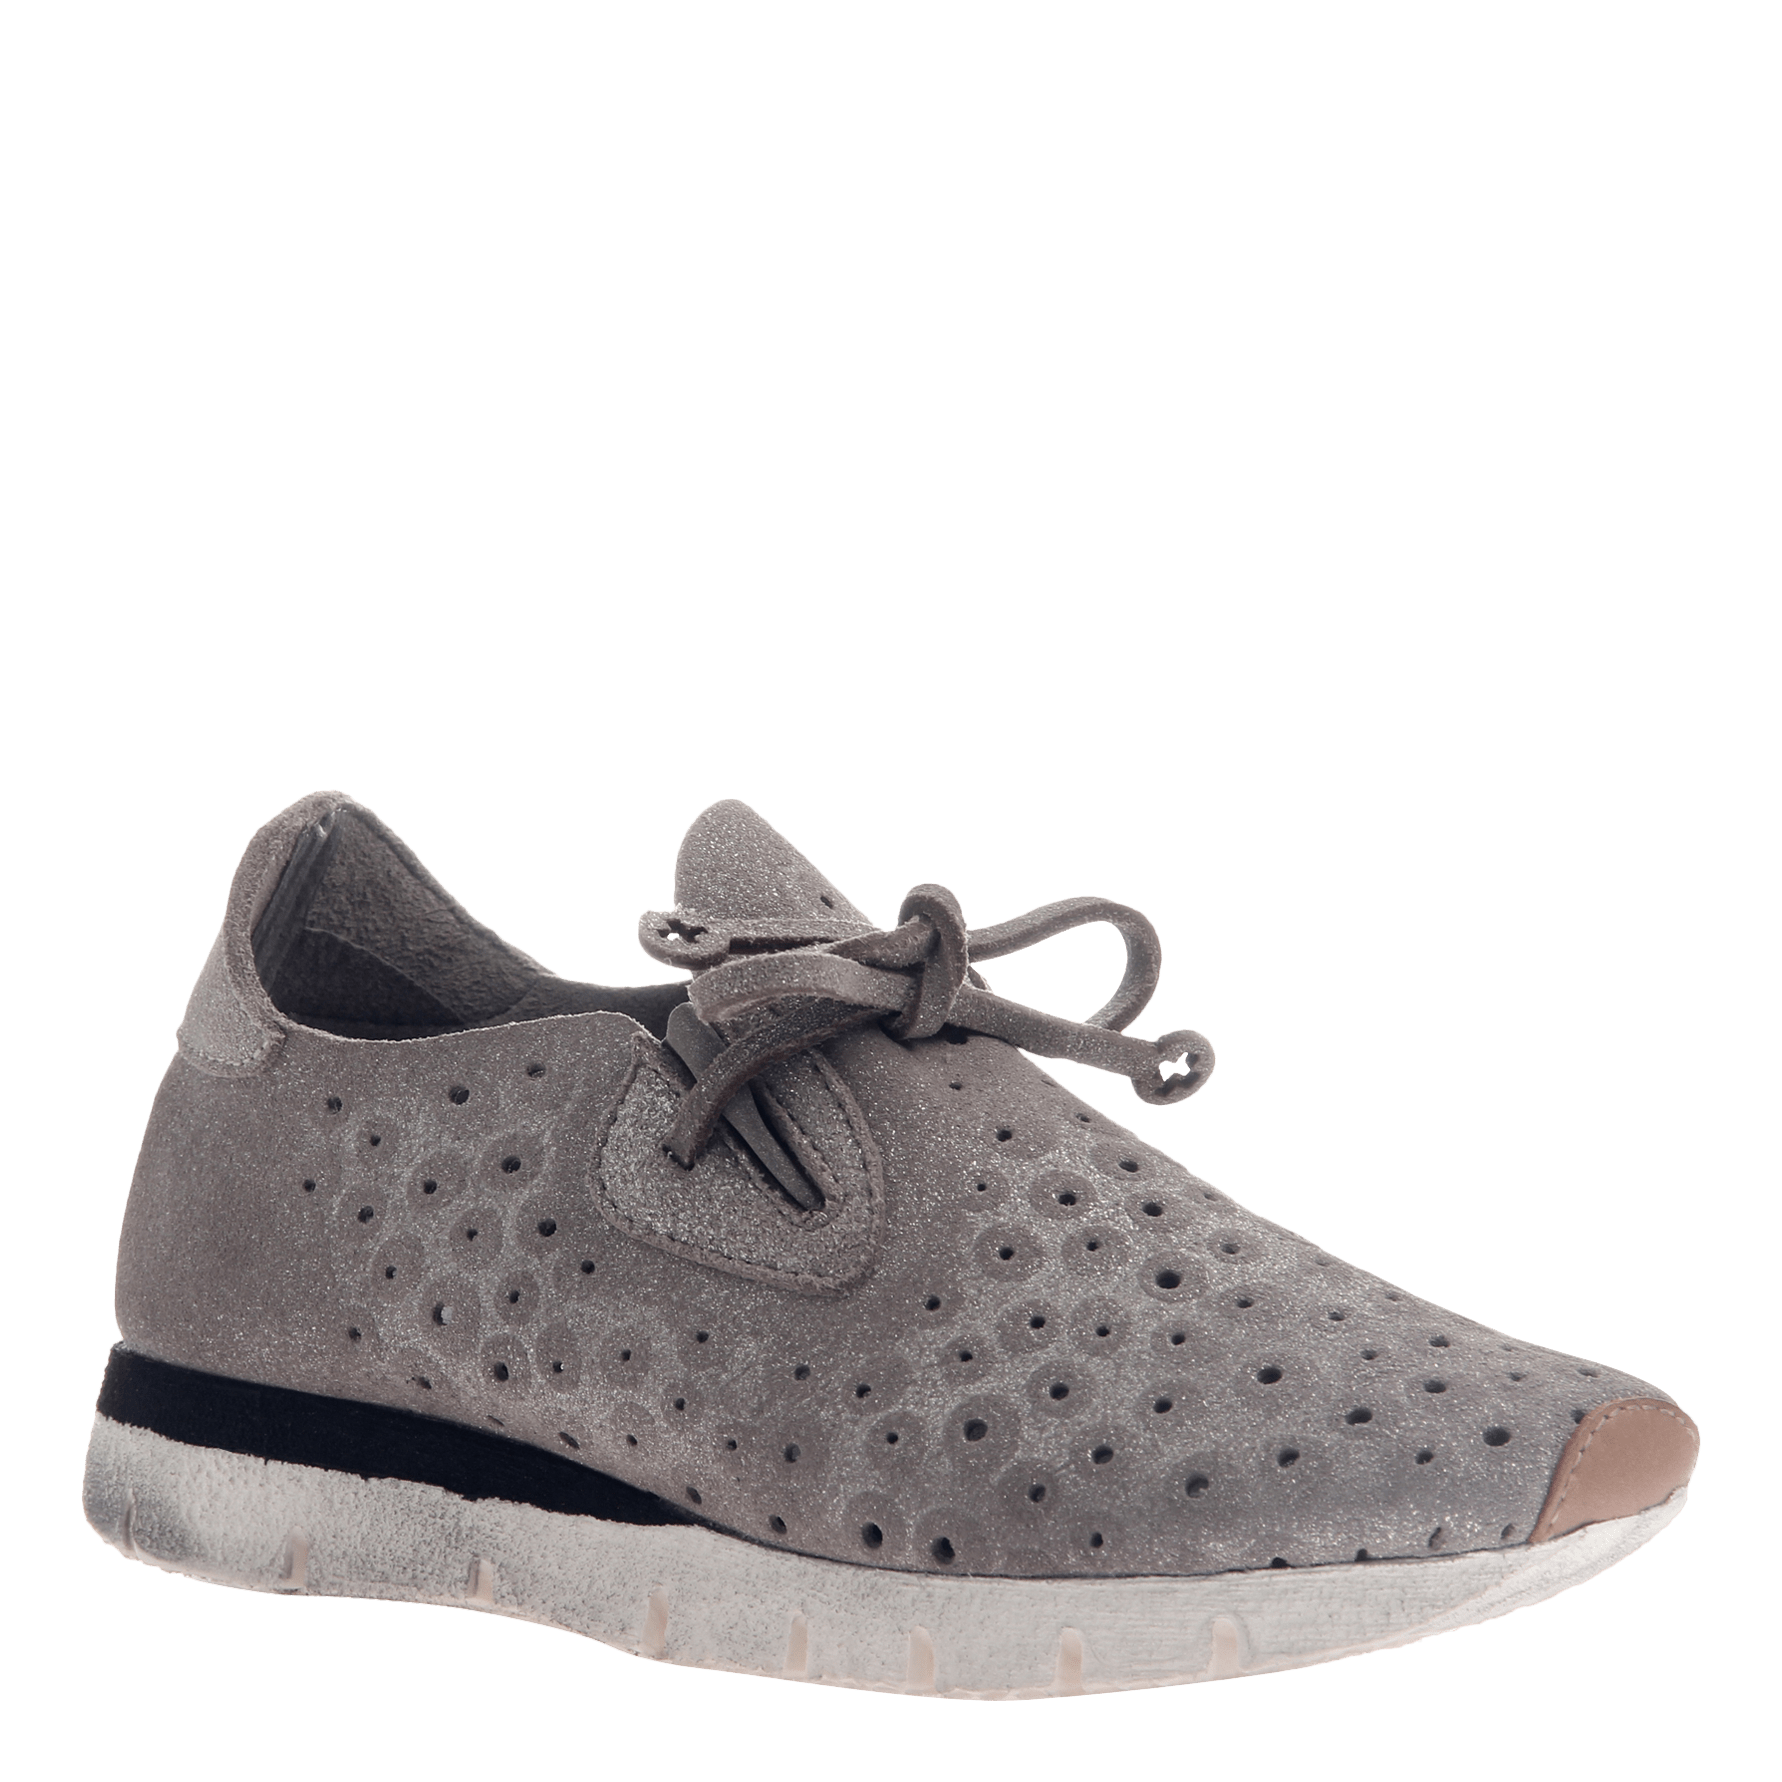 Lunar women's sneaker in Grey Silver